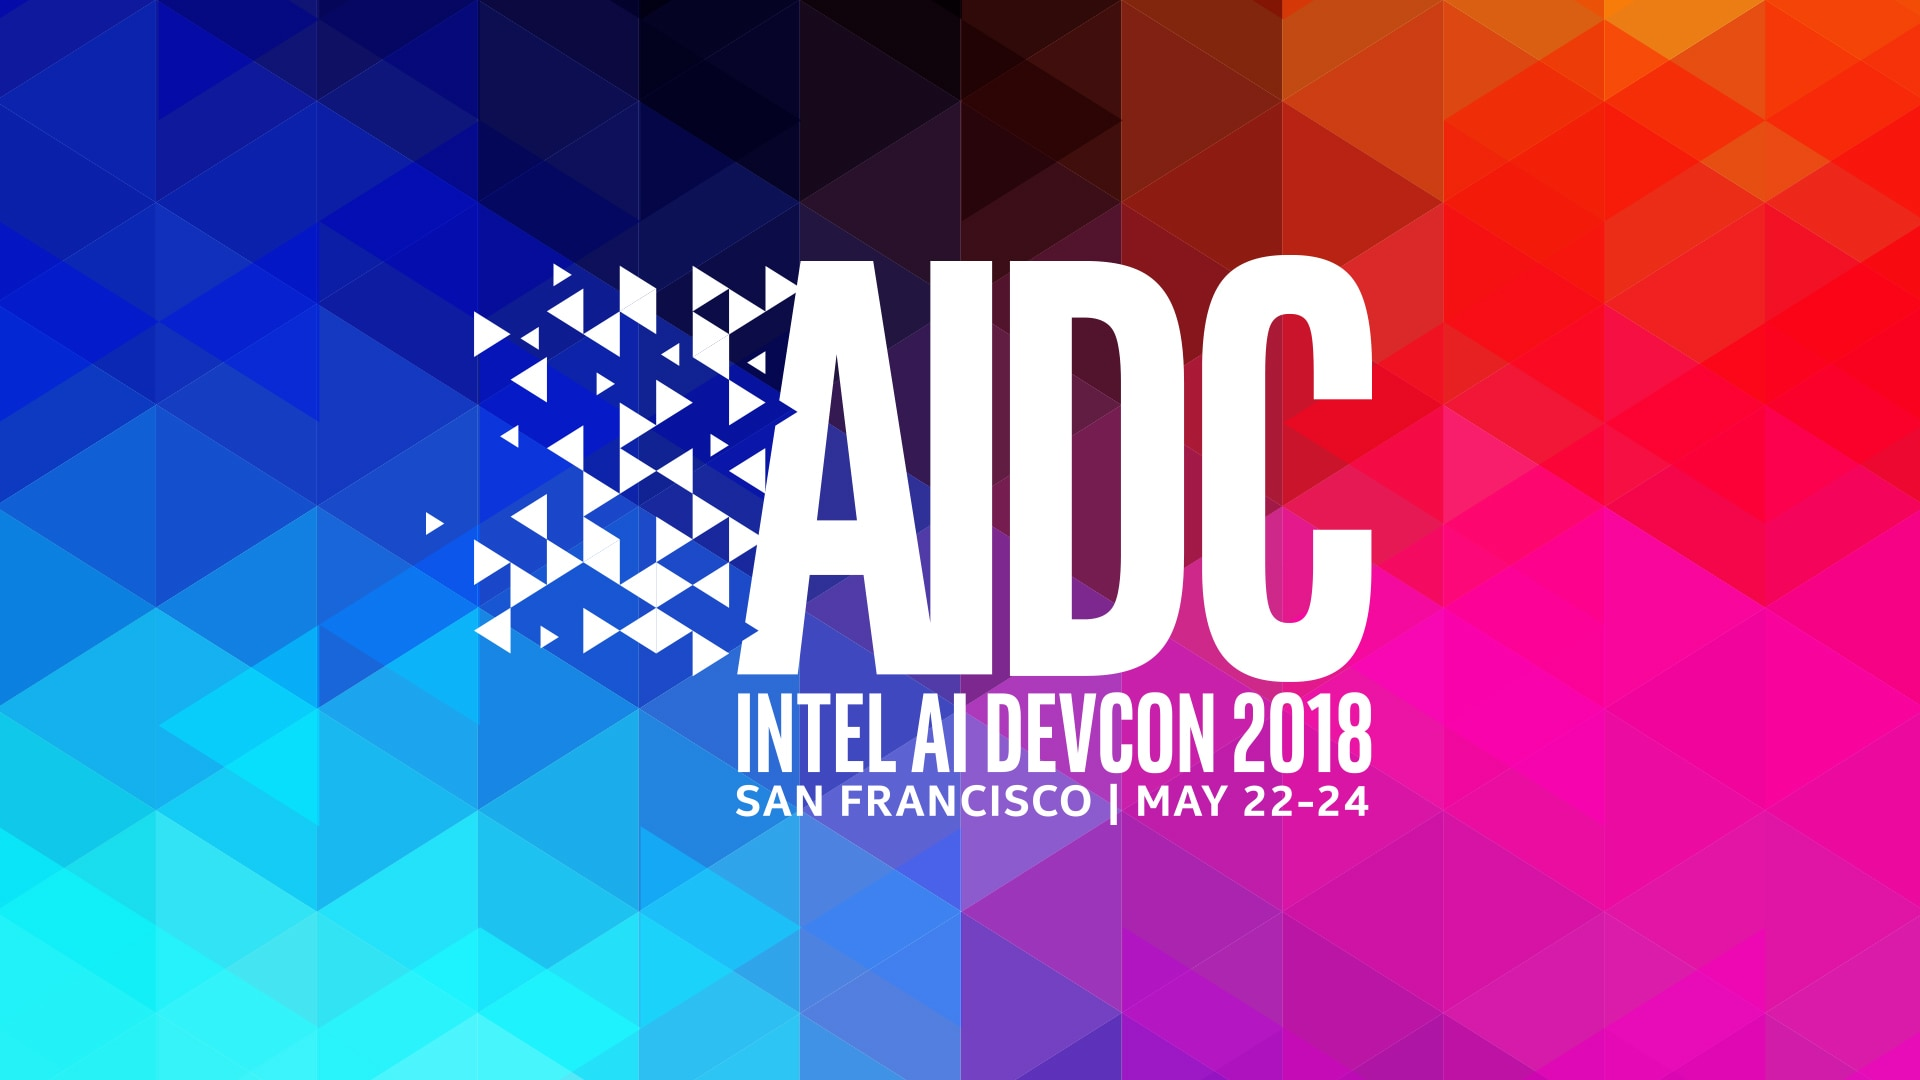 Intel Ai Devcon Aidc 2018 Artificial Intelligence Circuit Vector Pdf Free Graphics Download